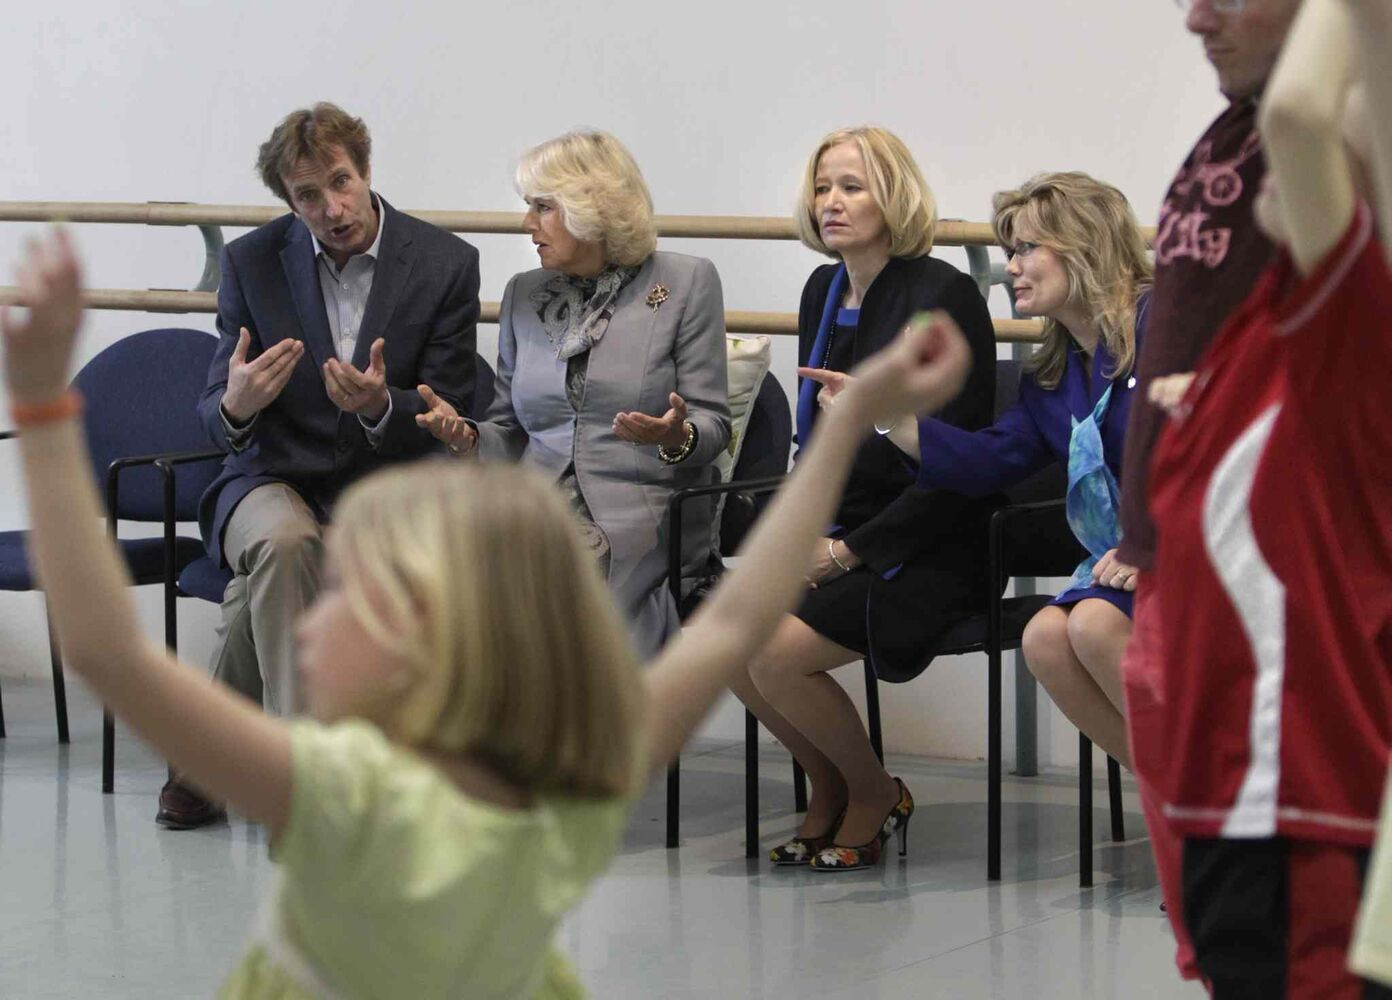 From left, Royal Winnipeg Ballet Artistic Director Andre Lewis, Camilla, Duchess of Cornwall, Laureen Harper and Shelly Glover, MP watch an RWB outreach movement workshop with children from Art City during their tour of Canada's Royal Winnipeg Ballet building on Wednesday.  (Wayne Glowacki / Winnipeg Free Press)